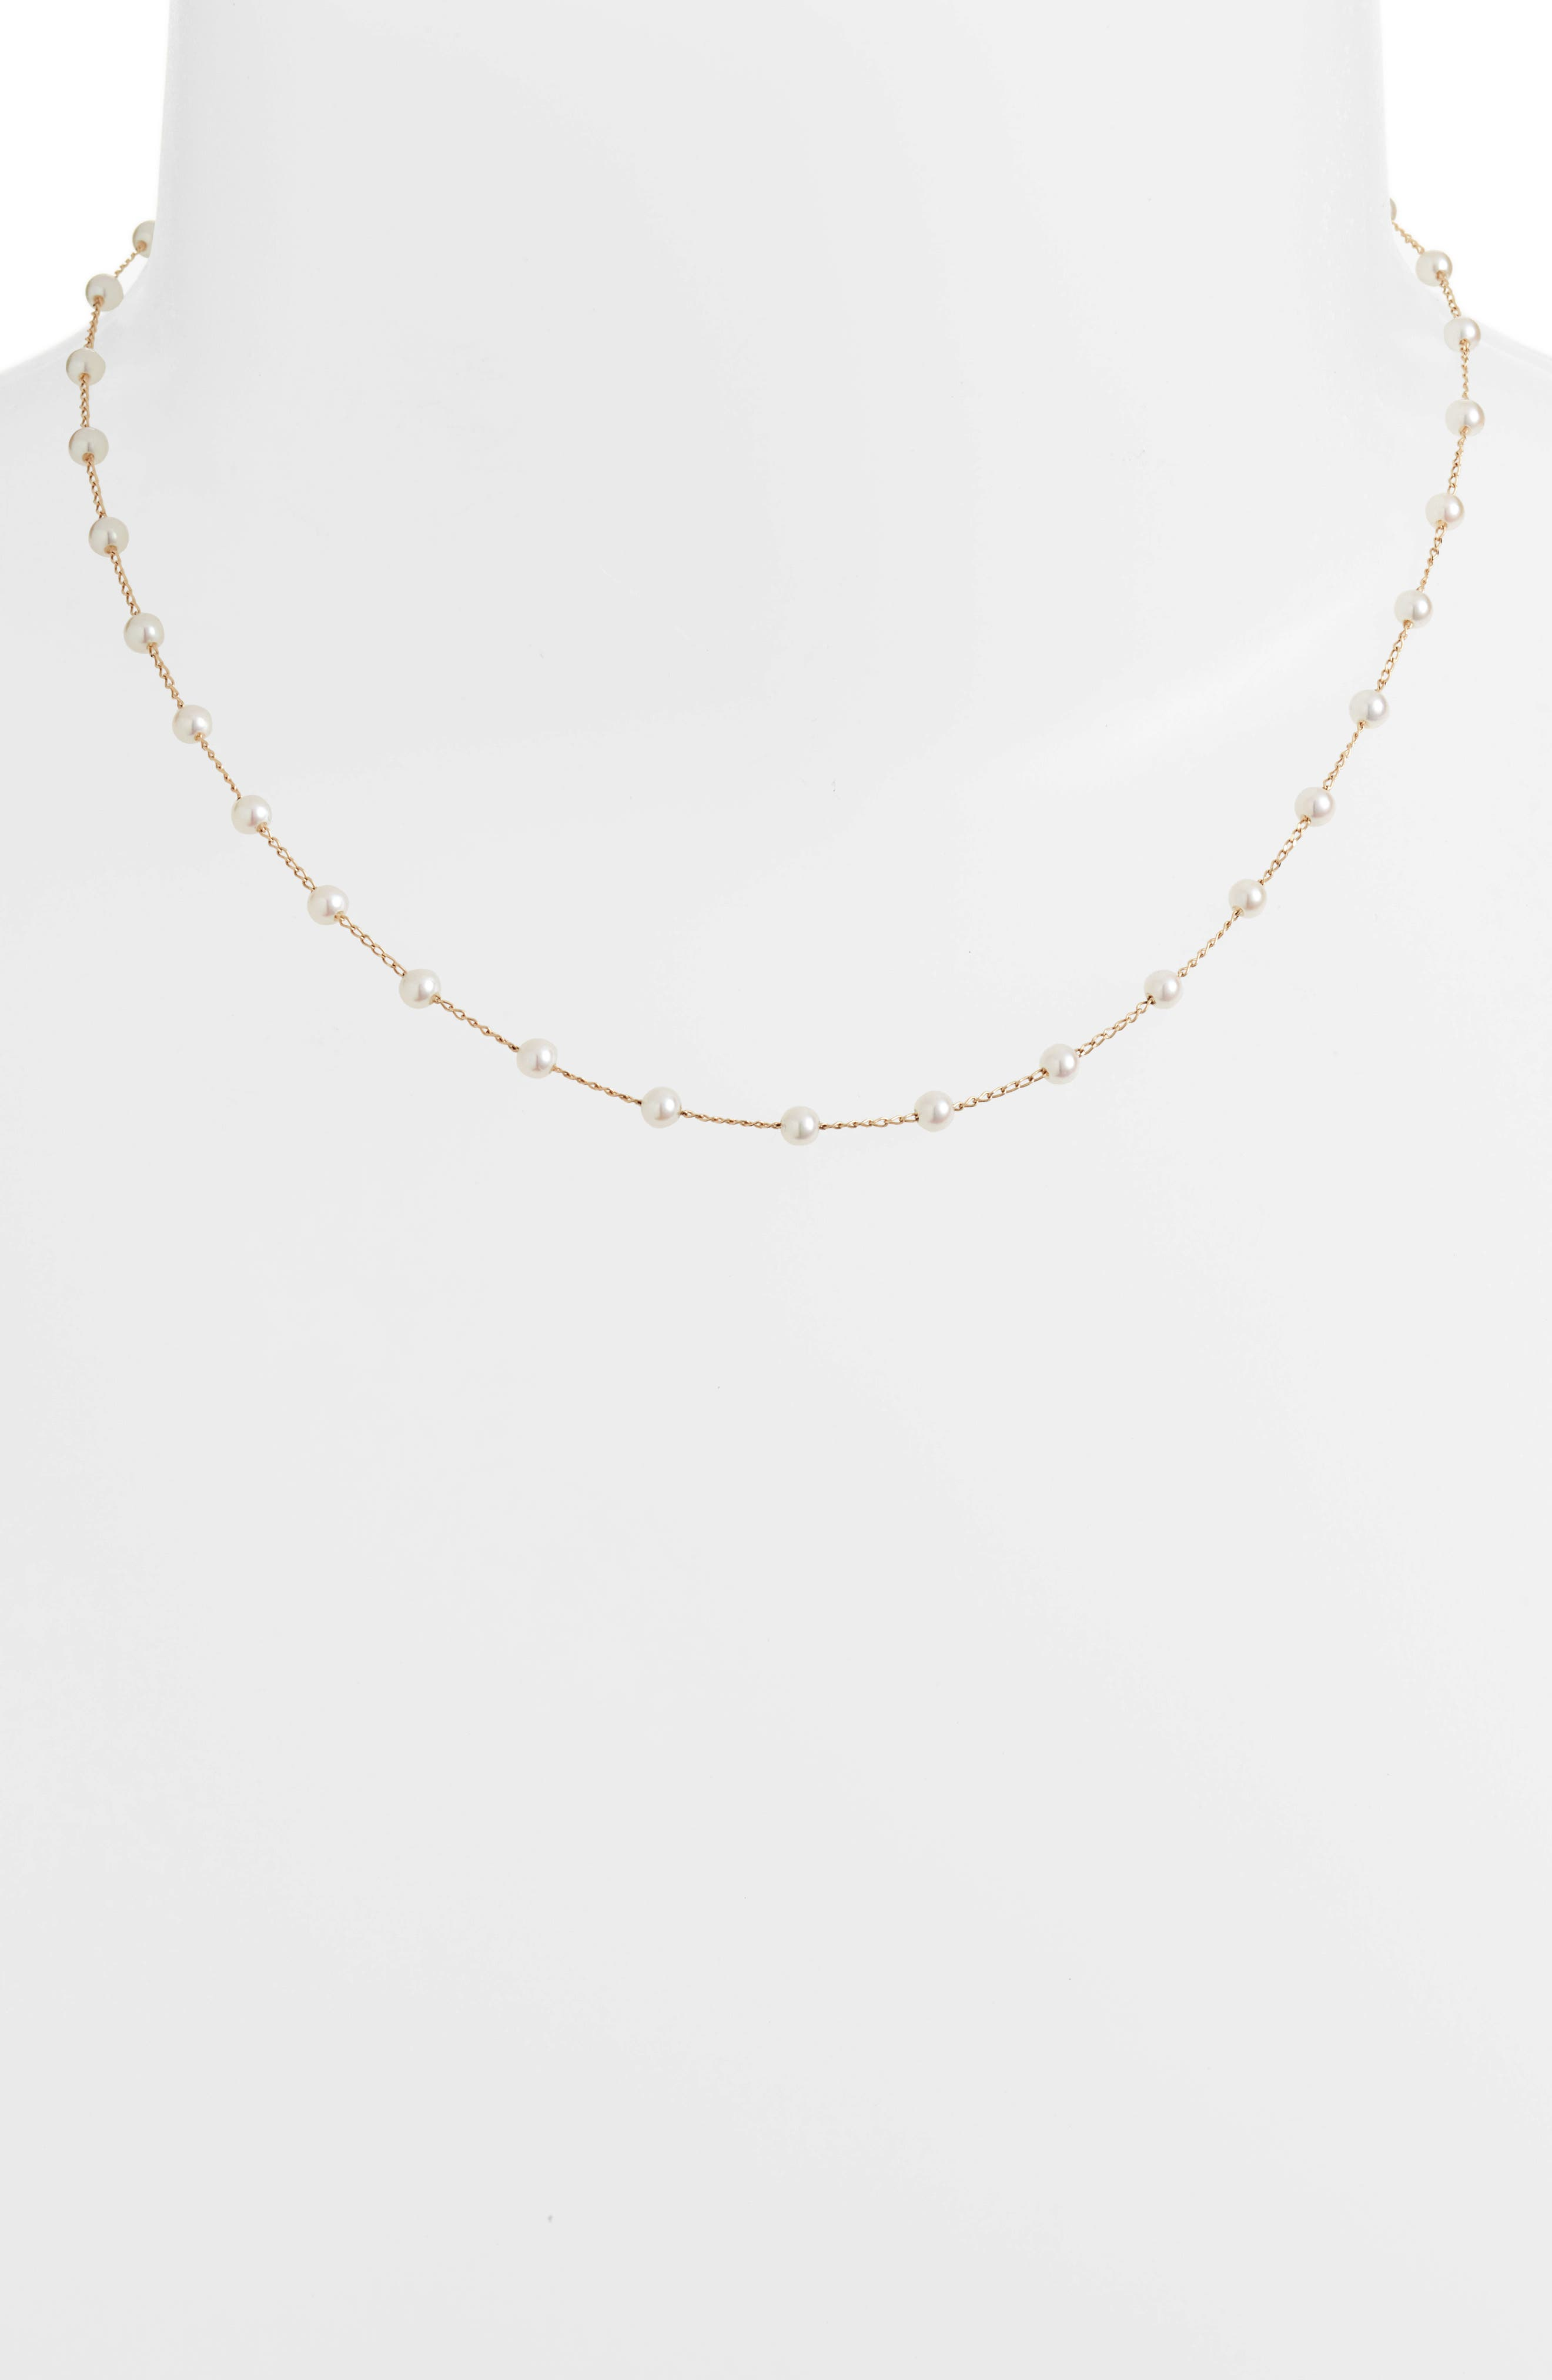 Pearl Choker Necklace,                             Alternate thumbnail 2, color,                             Yellow Gold/ Pearl